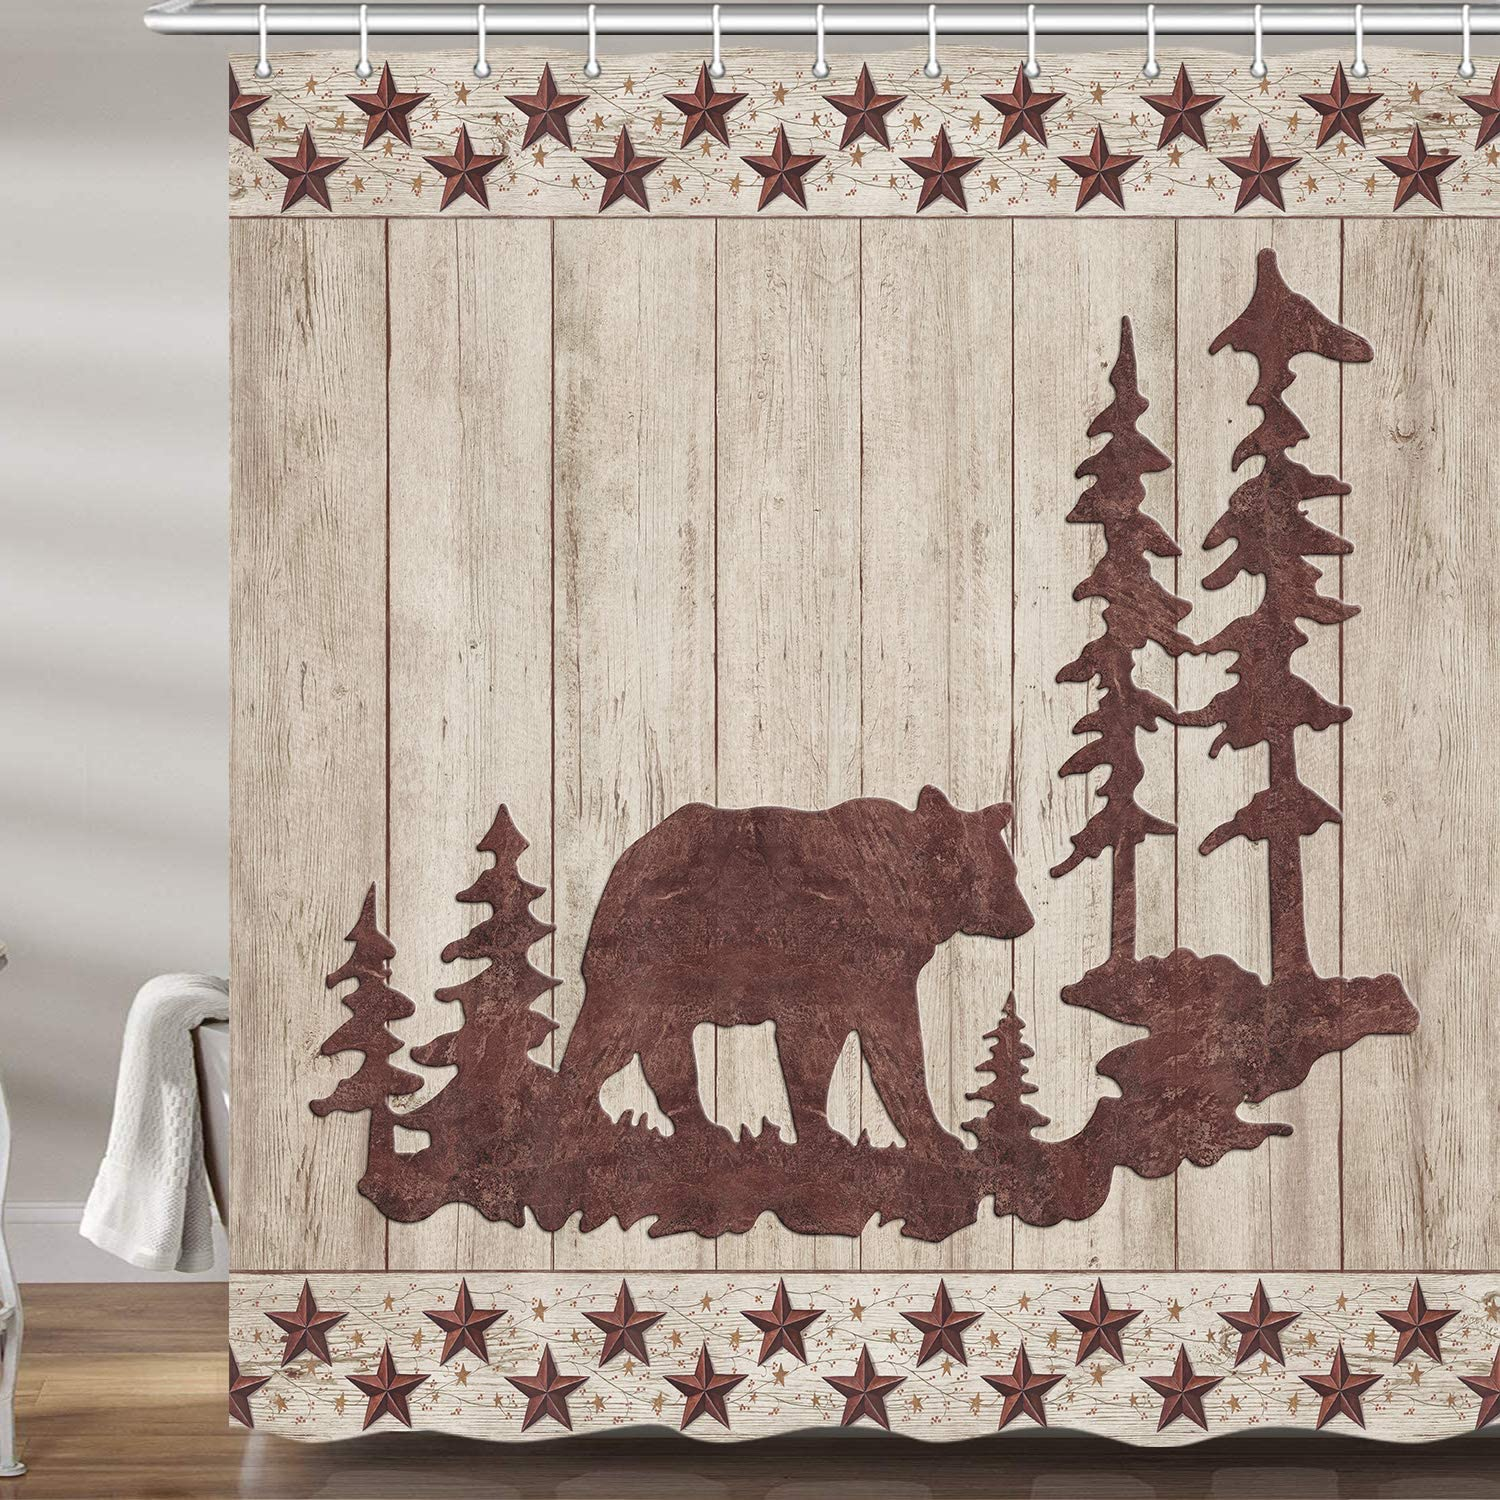 JAWO New Free Shipping Bear Shower Curtains for New Free Shipping Bathroom Animals in Forest Wild R